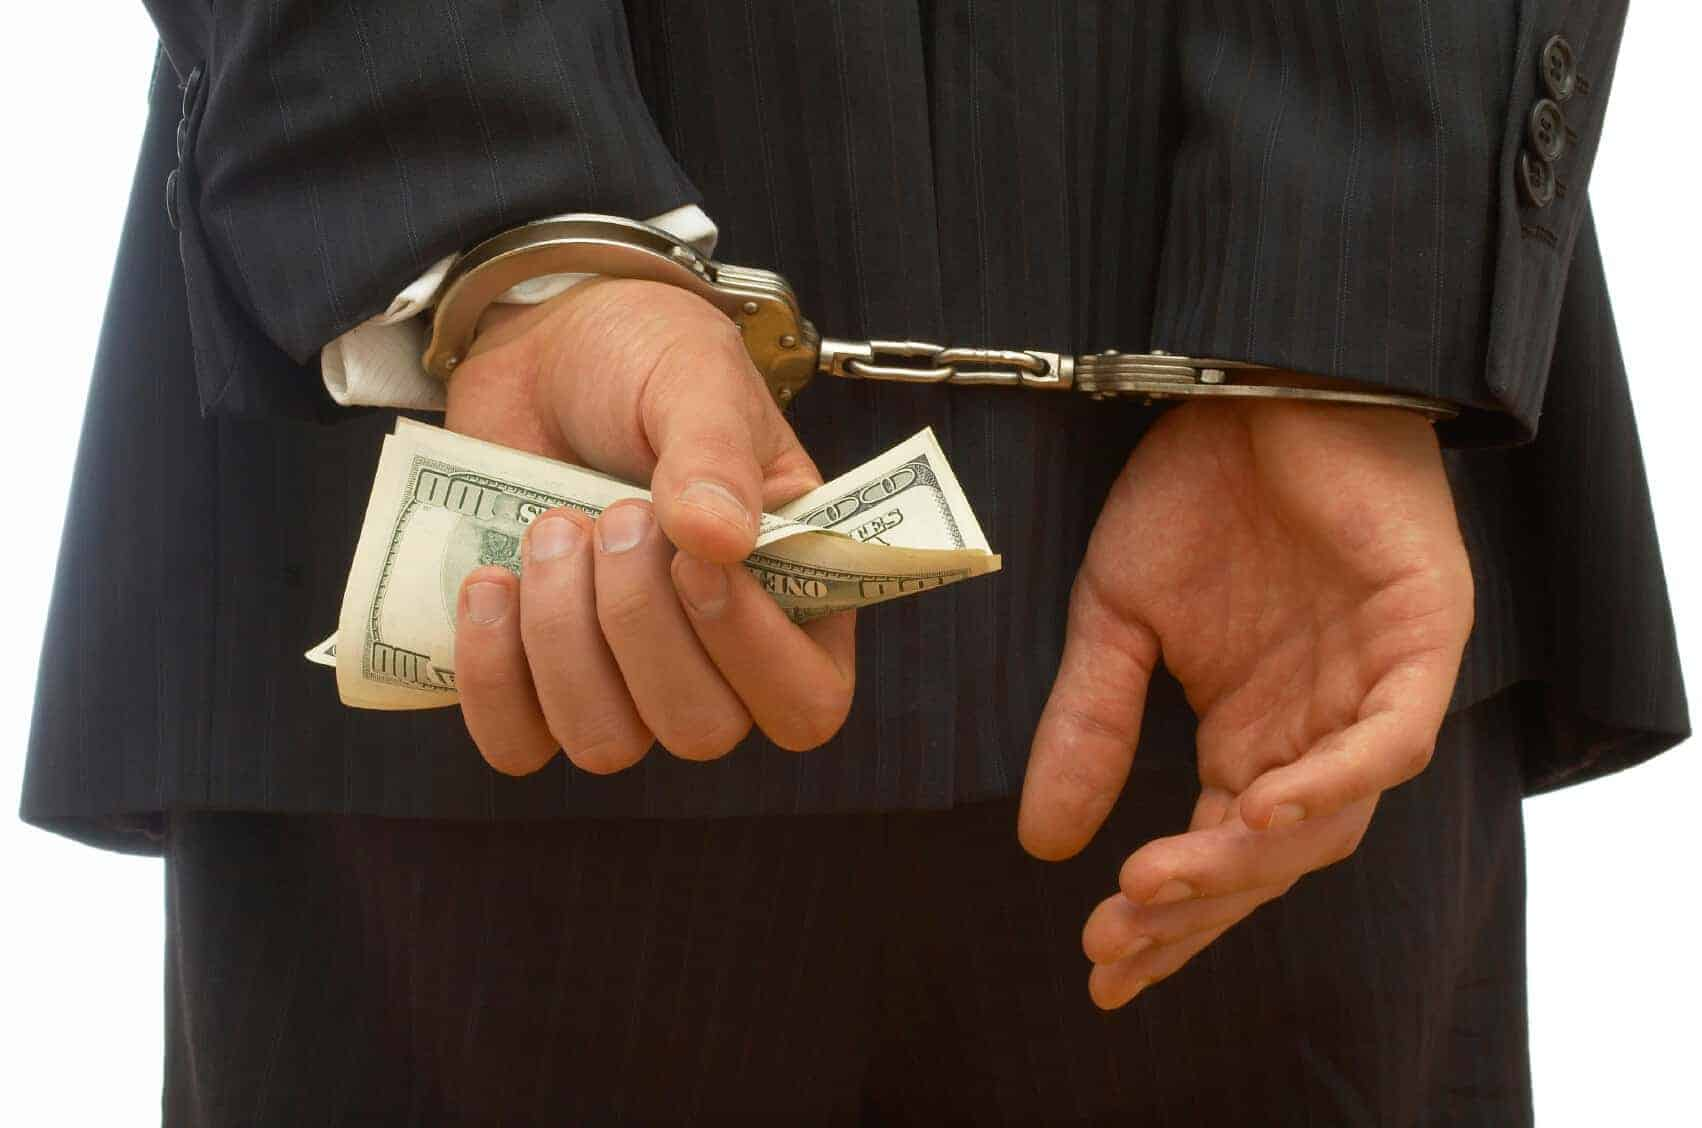 Scam lawsuits with unusual situations